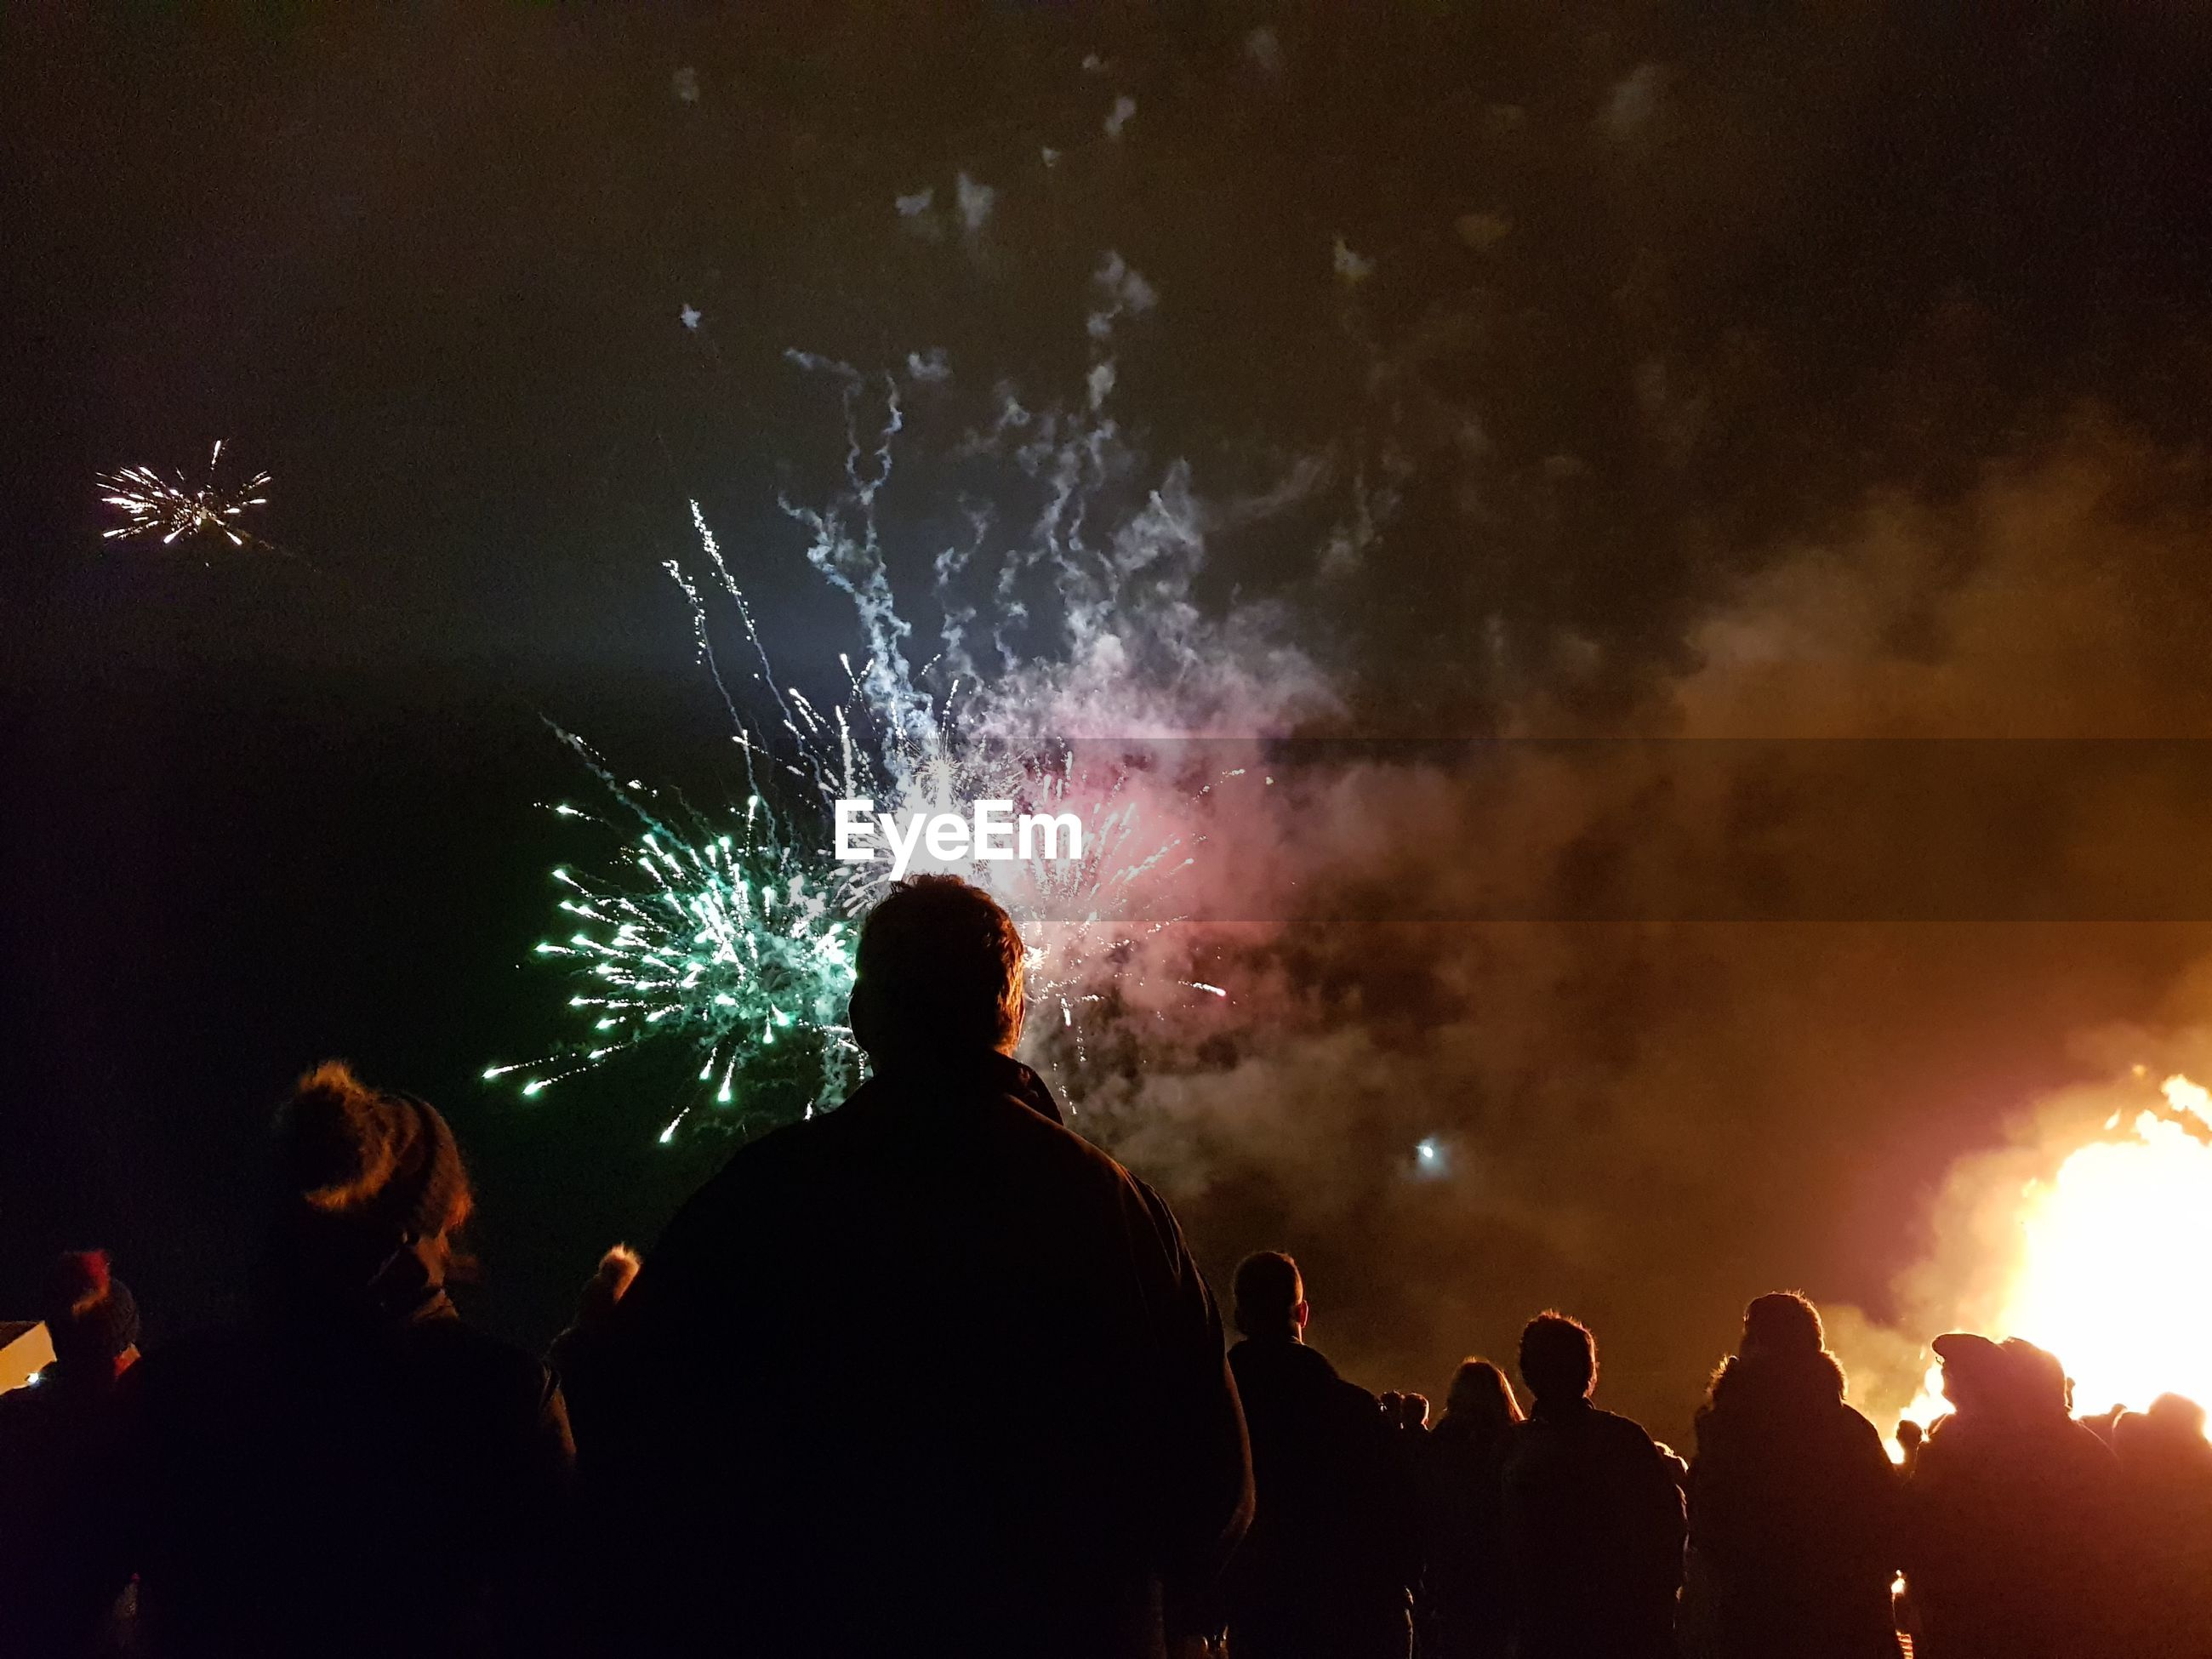 Rear view of silhouette people watching firework display at night